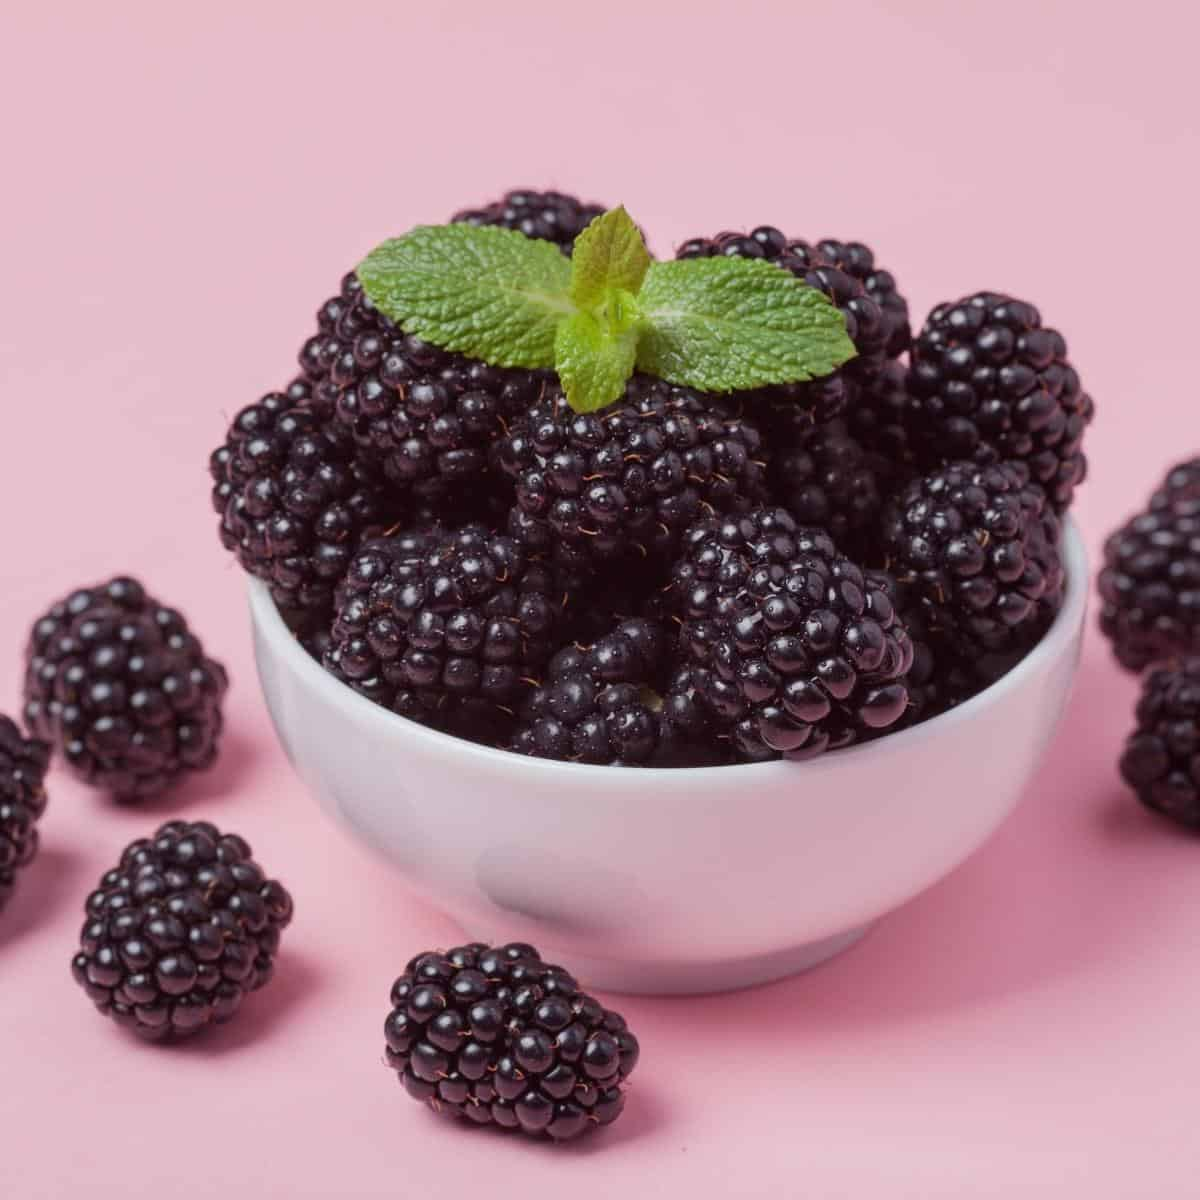 A bowl with blackberries